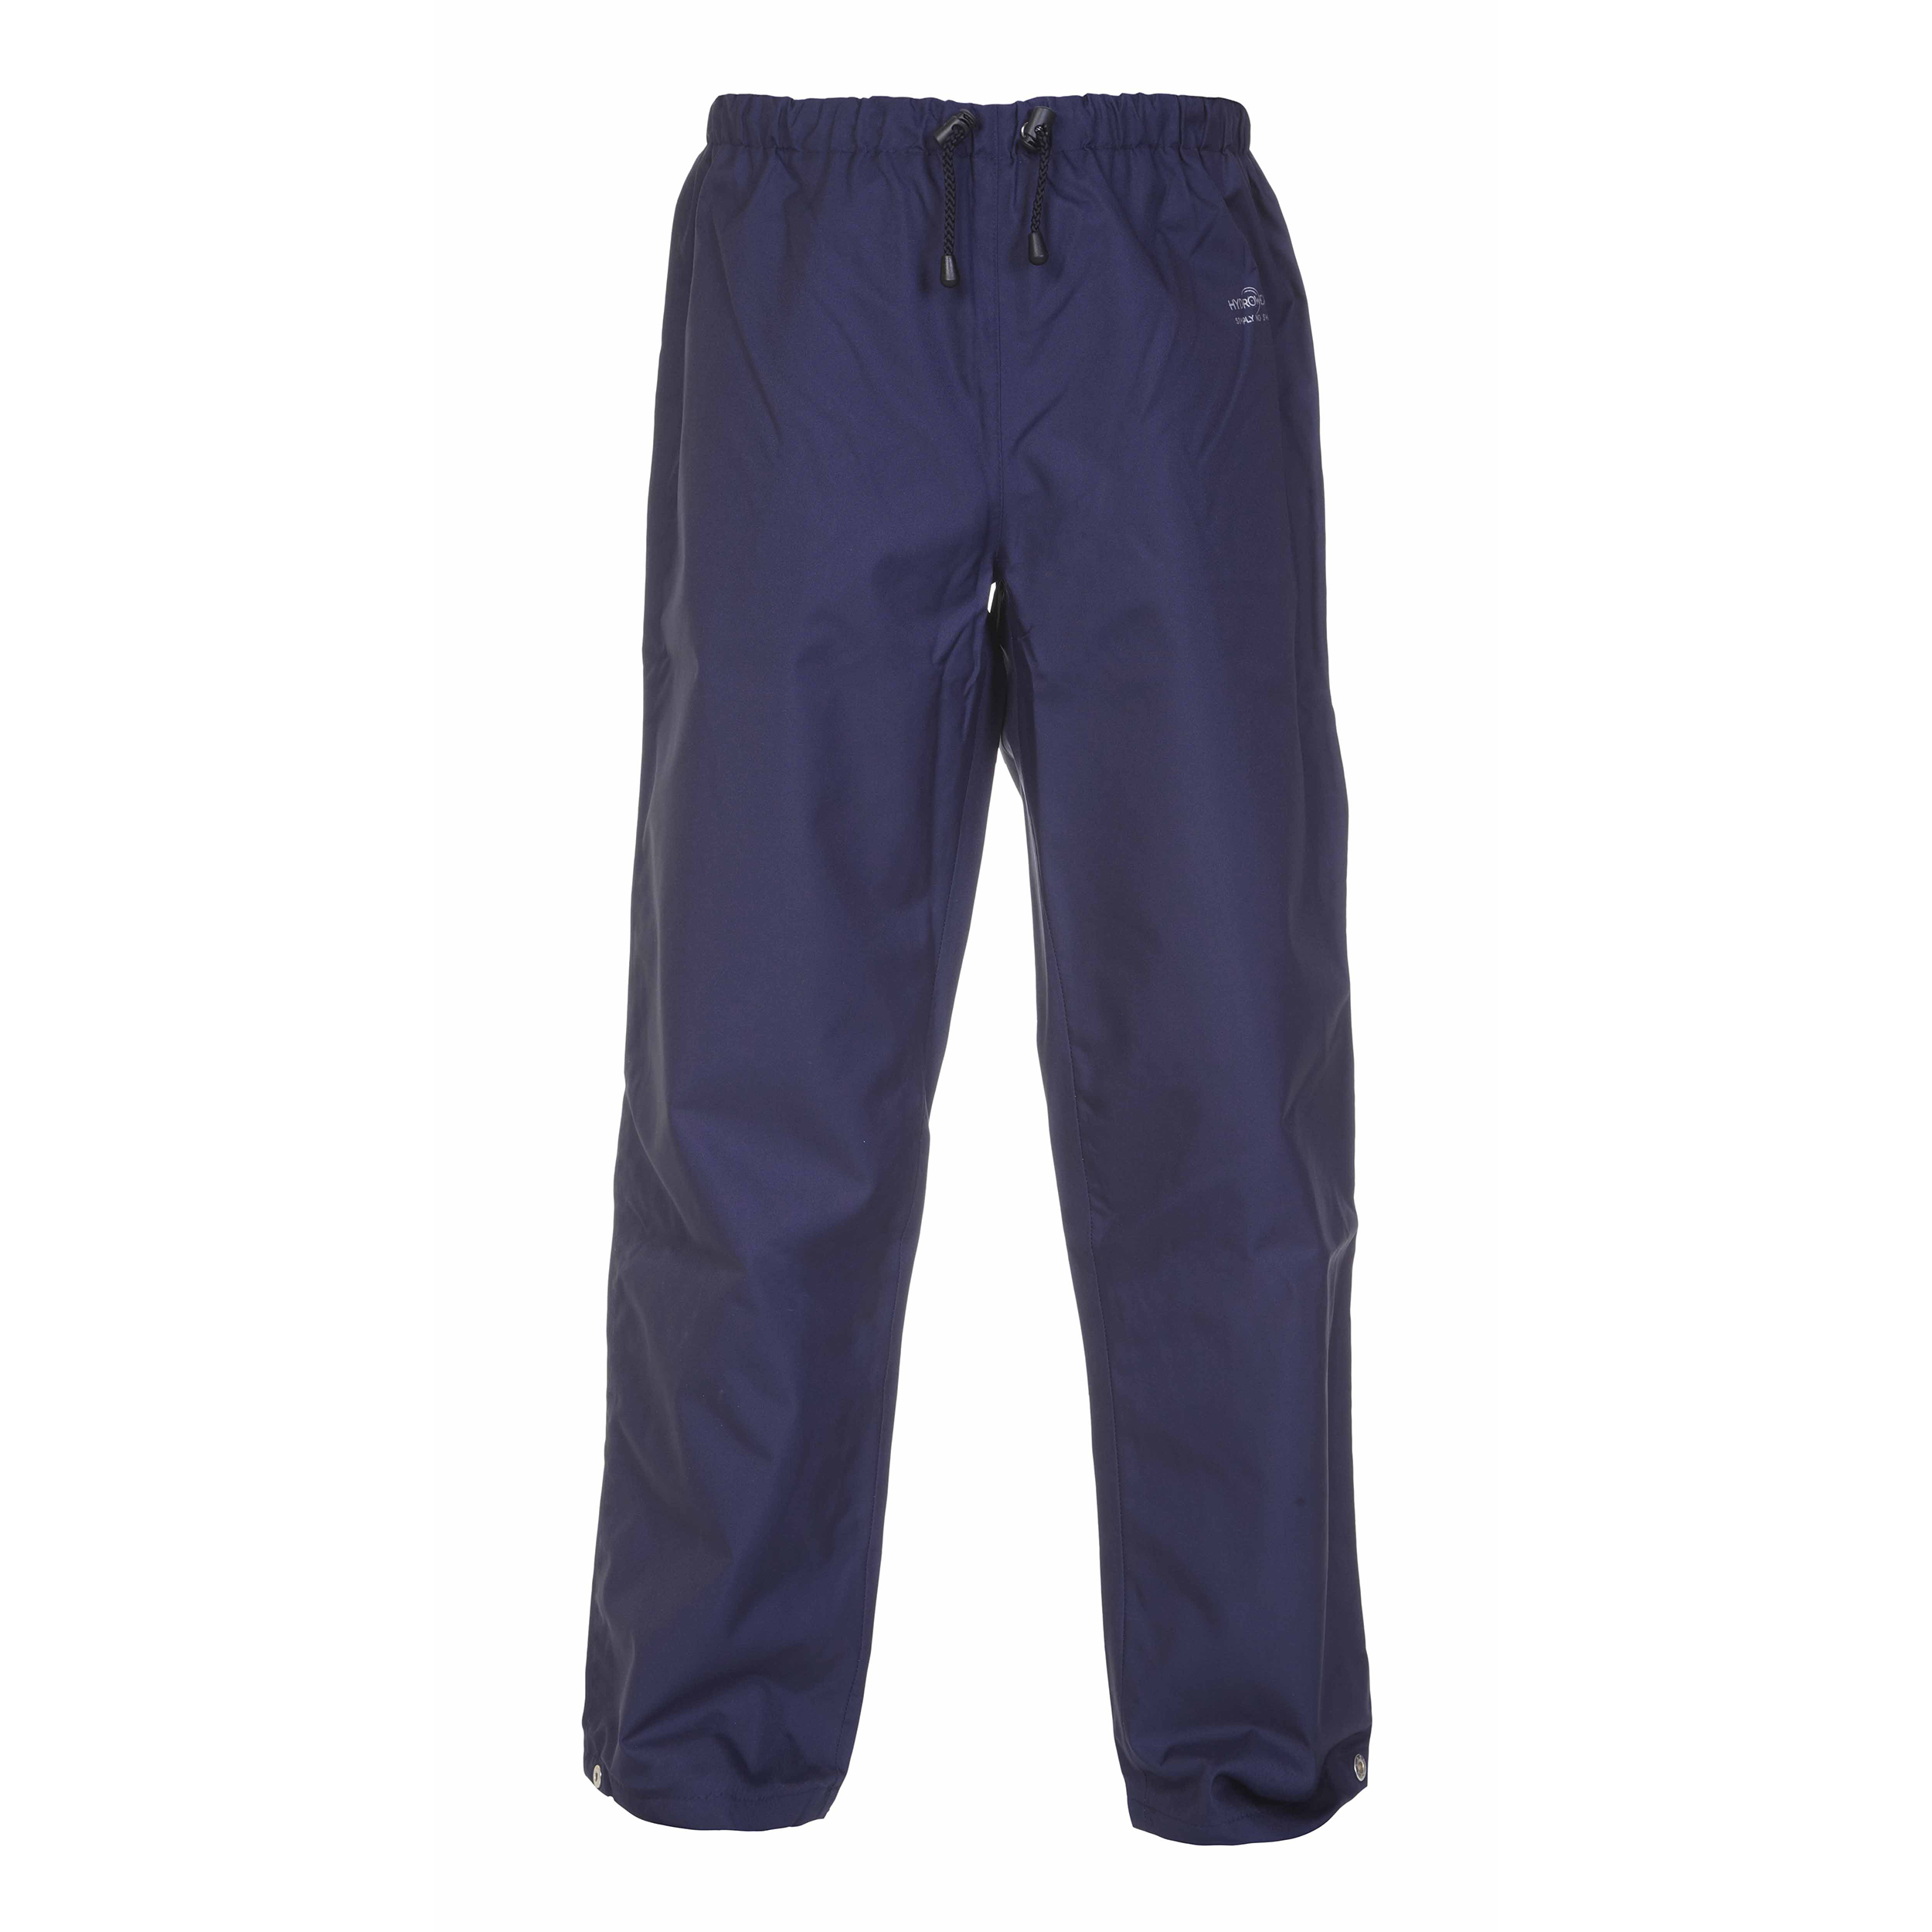 Mens slacks or trousers or shorts Hydowear Utrecht SNS Waterproof Trousers 4XL Navy Ref HYD072350N4XL *Up to 3 Day Leadtime*